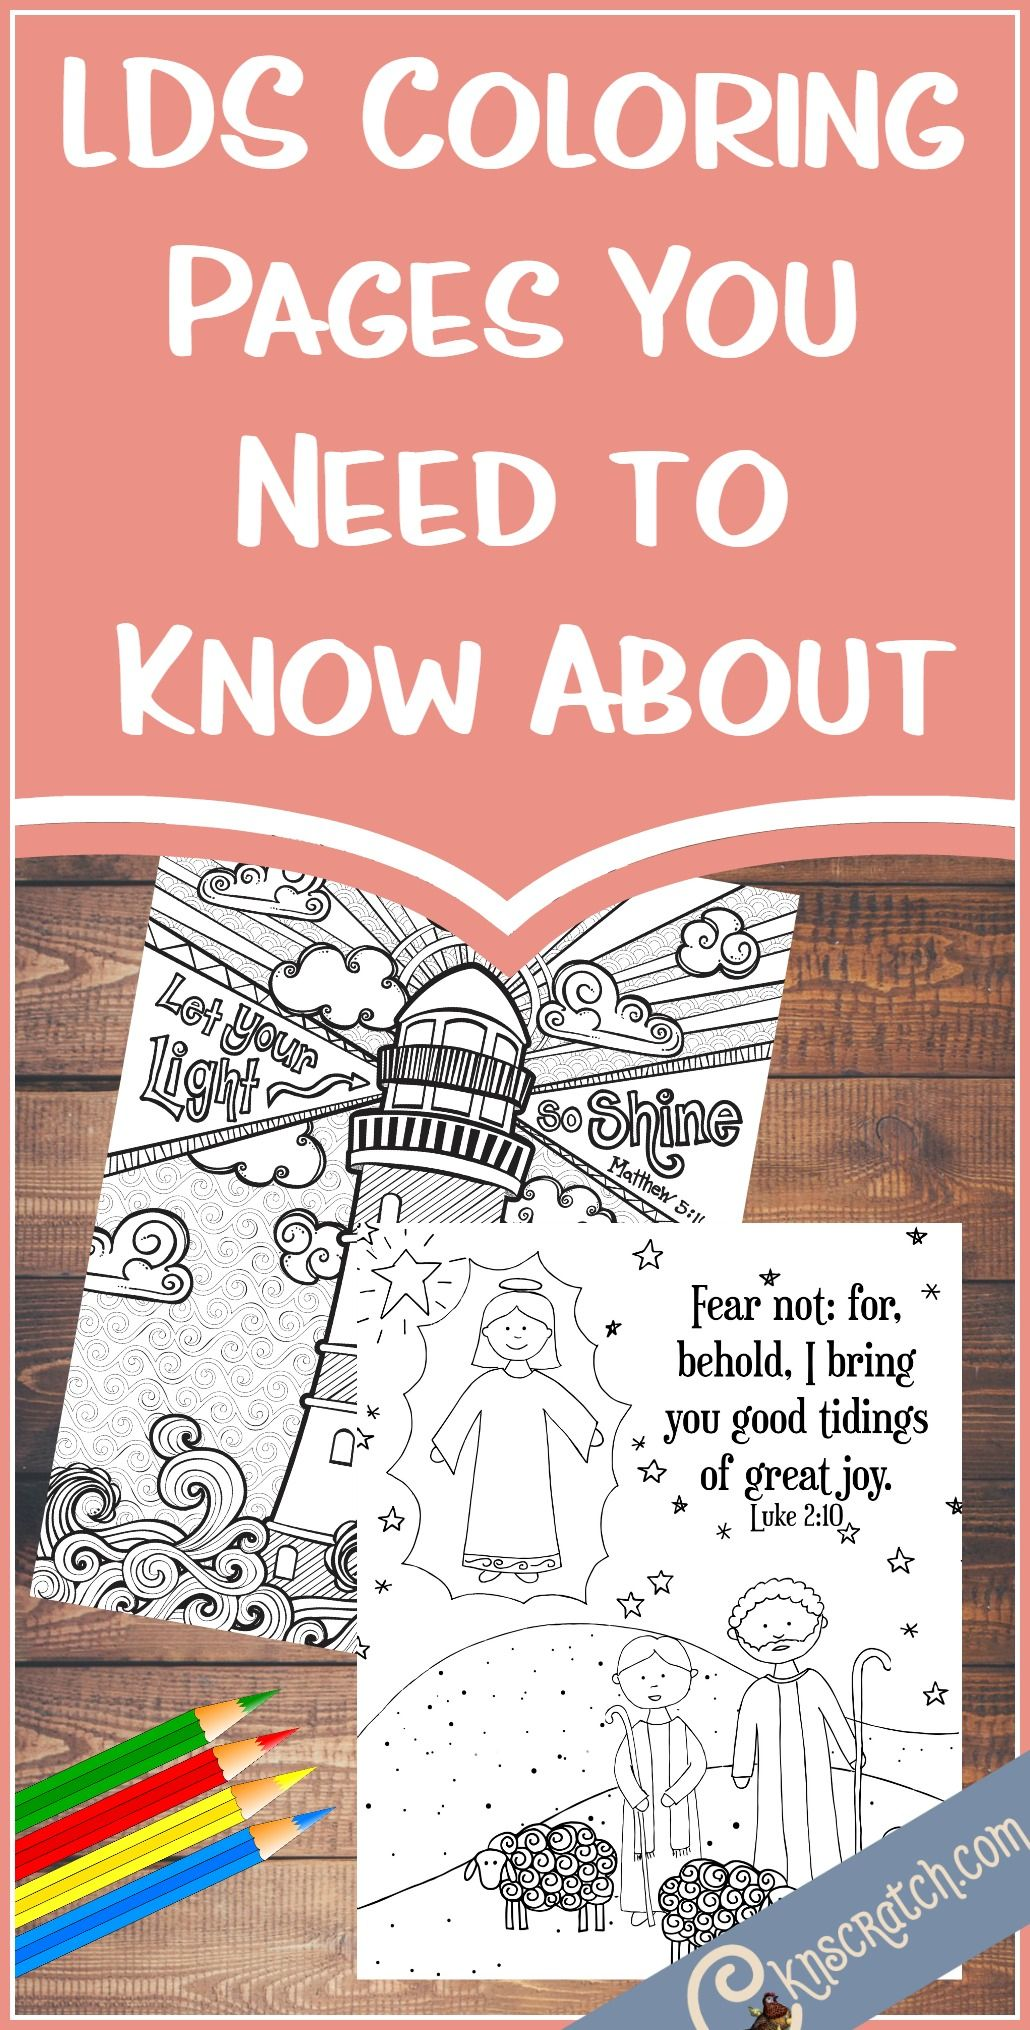 LDS Coloring Pages You Need to Know About | I belong to the church ...